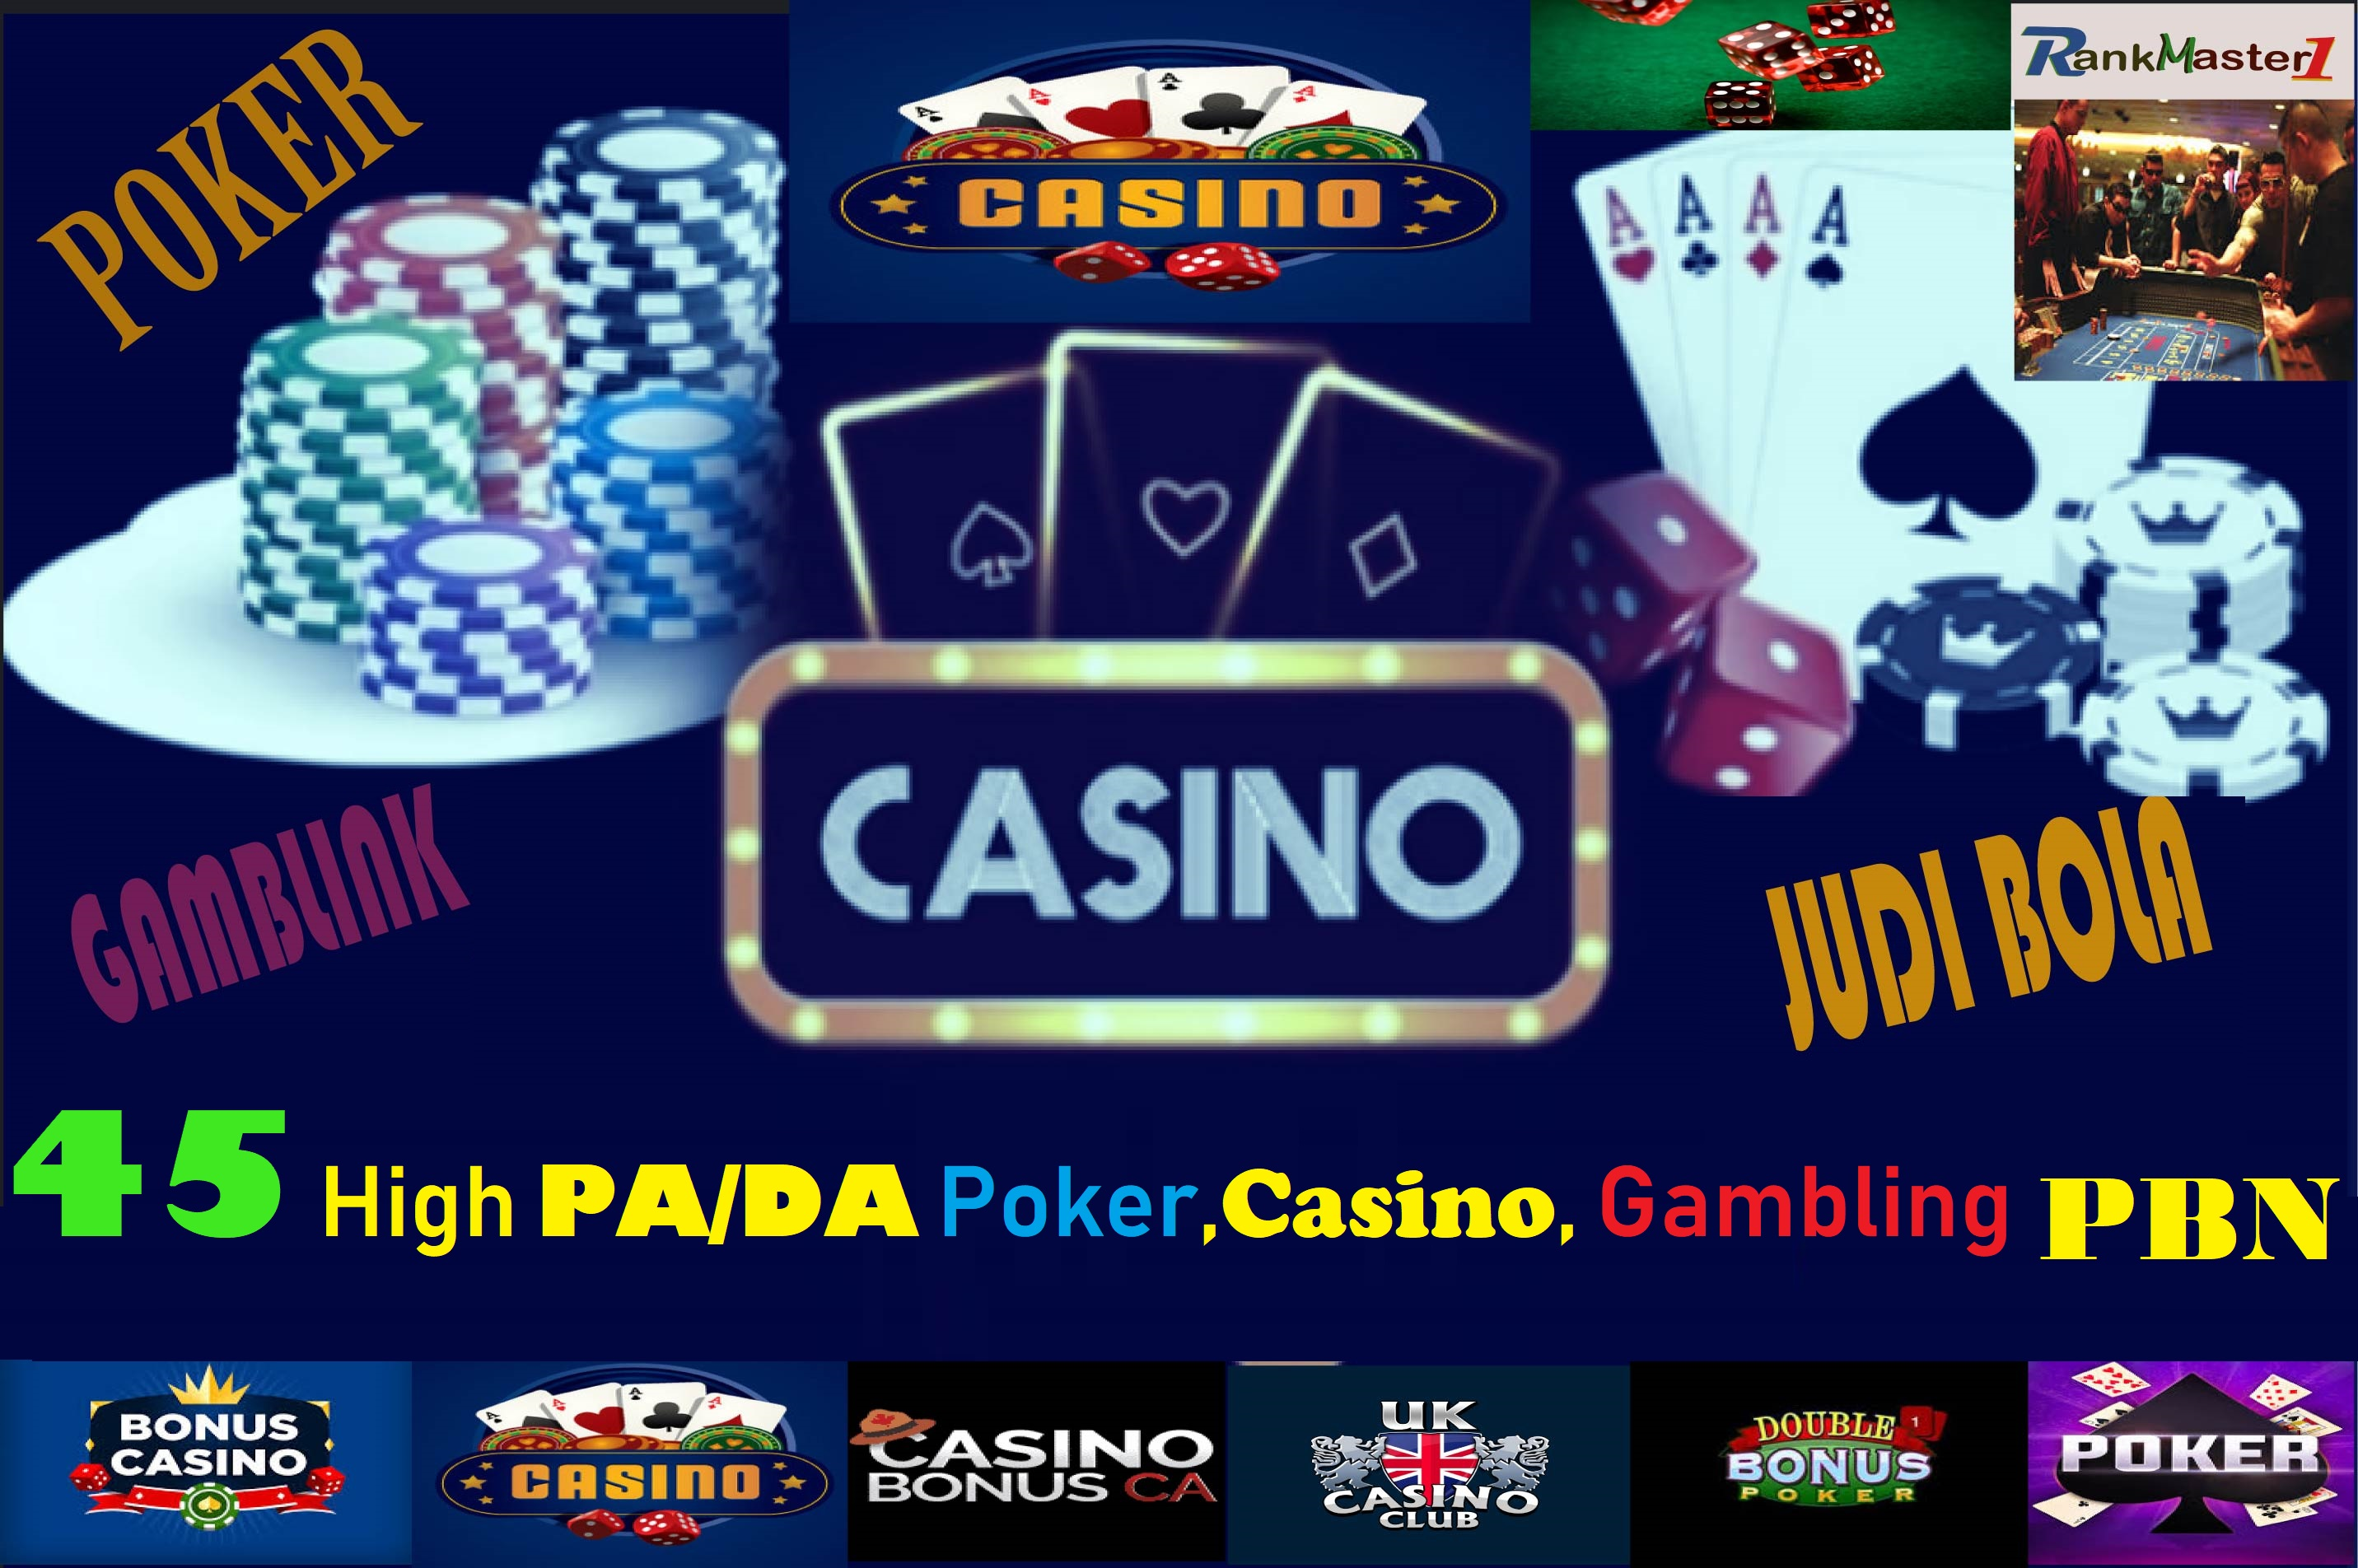 45 Powerful DA/PA Casino, Gambling, Poker PBN Links